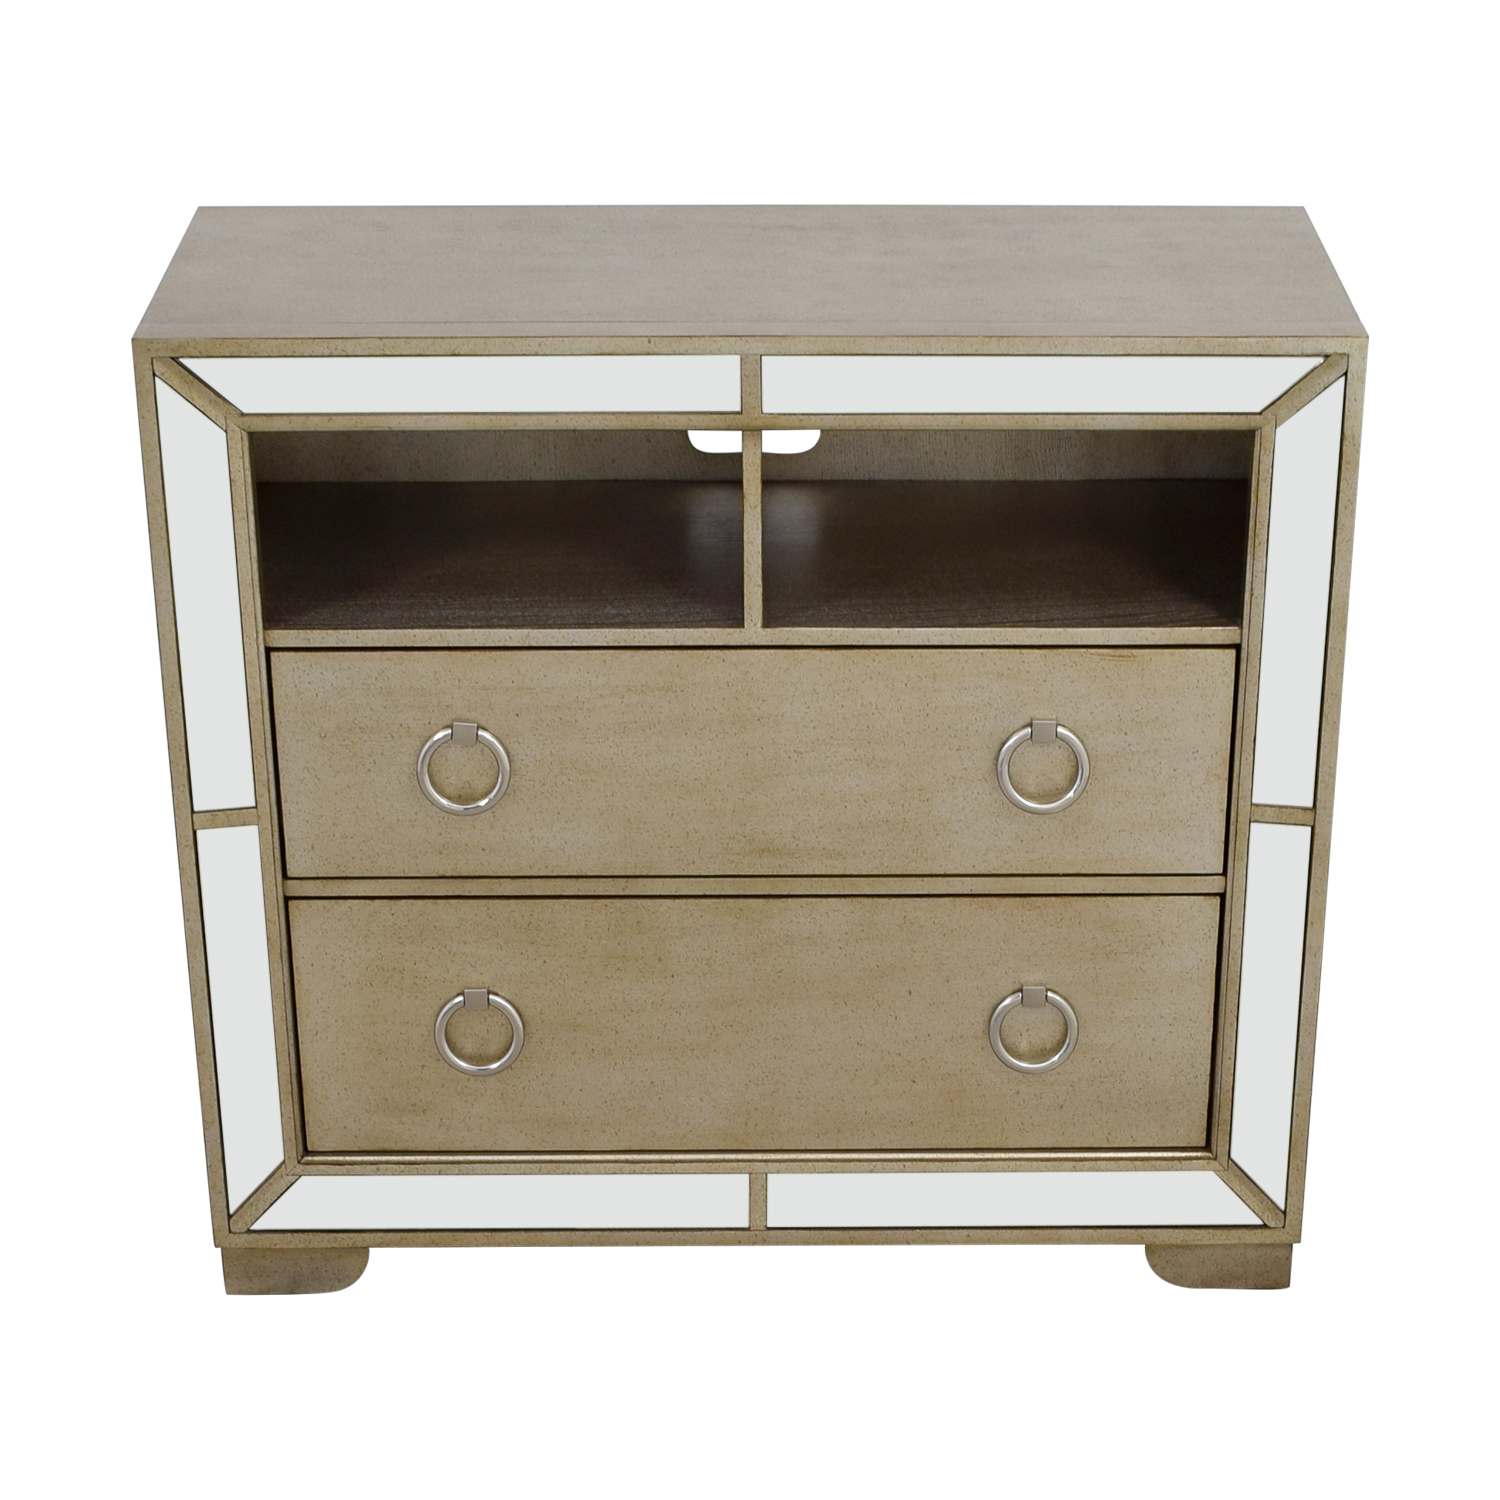 shop Z-Gallerie Art Deco Silver and Mirrored Dresser Z-Gallerie Dressers